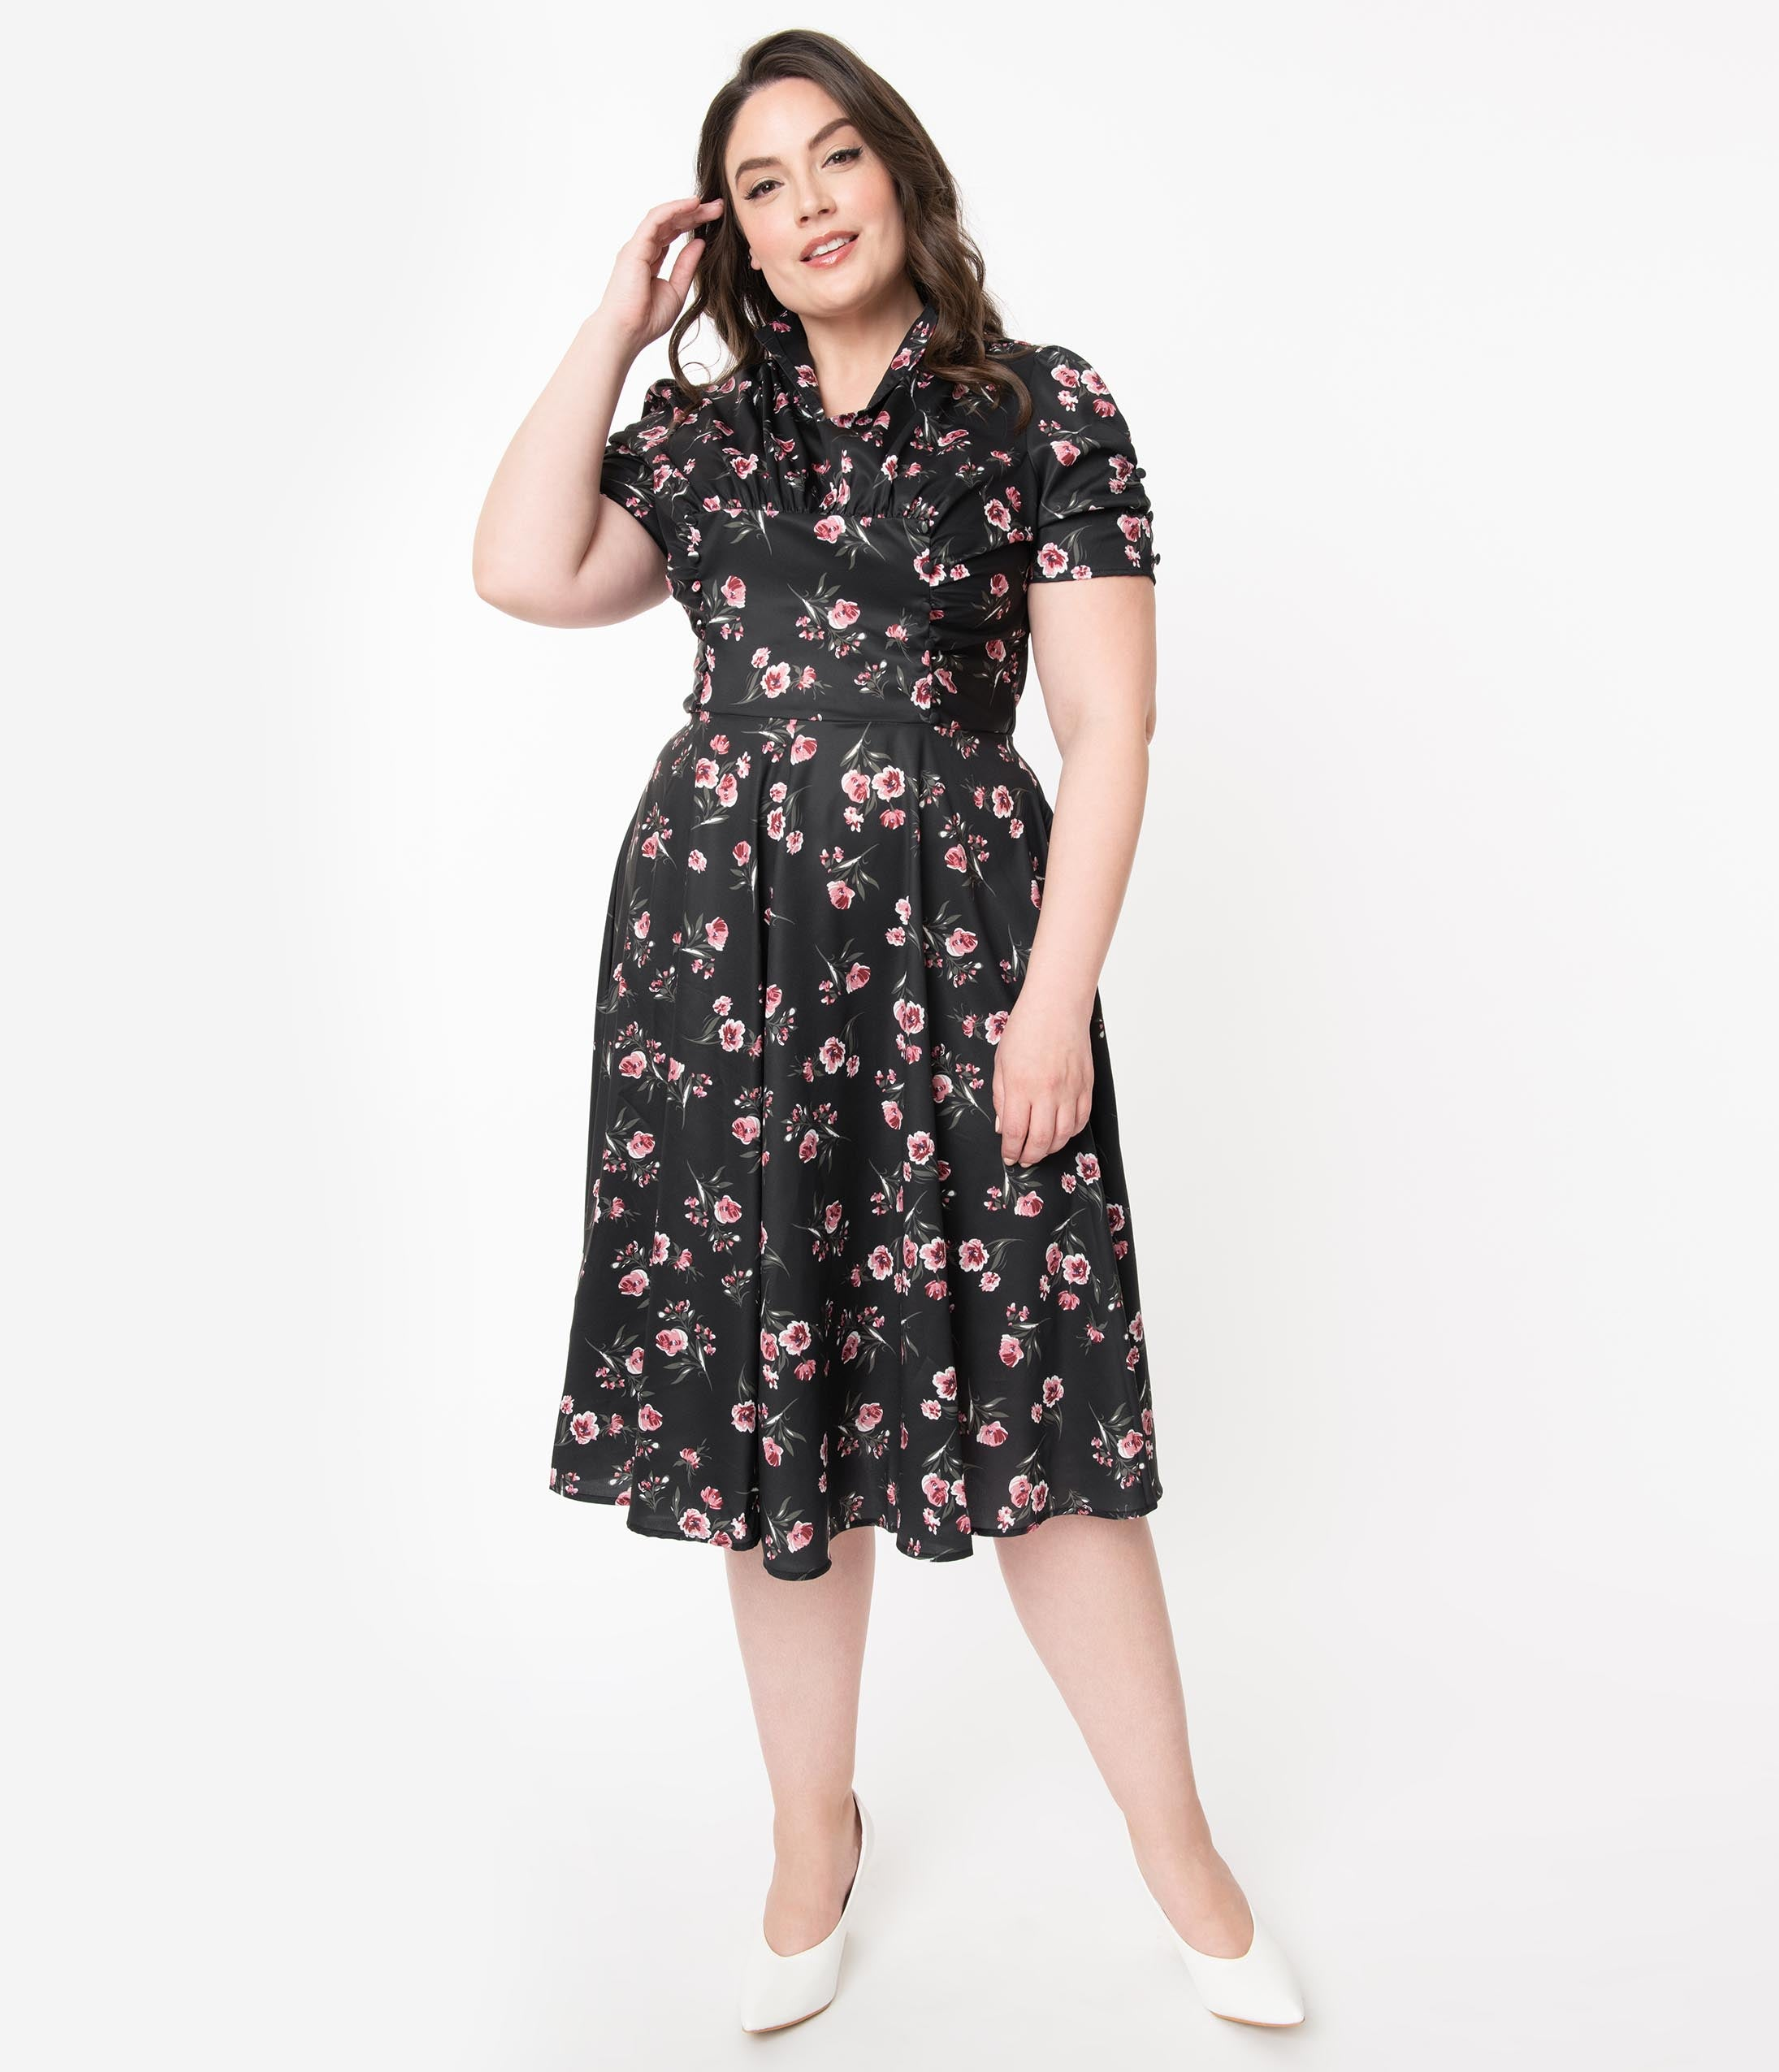 1940s Plus Size Dresses | Swing Dress, Tea Dress Unique Vintage Plus Size 1940S Black  Pink Floral Print Camilla Midi Dress $78.00 AT vintagedancer.com